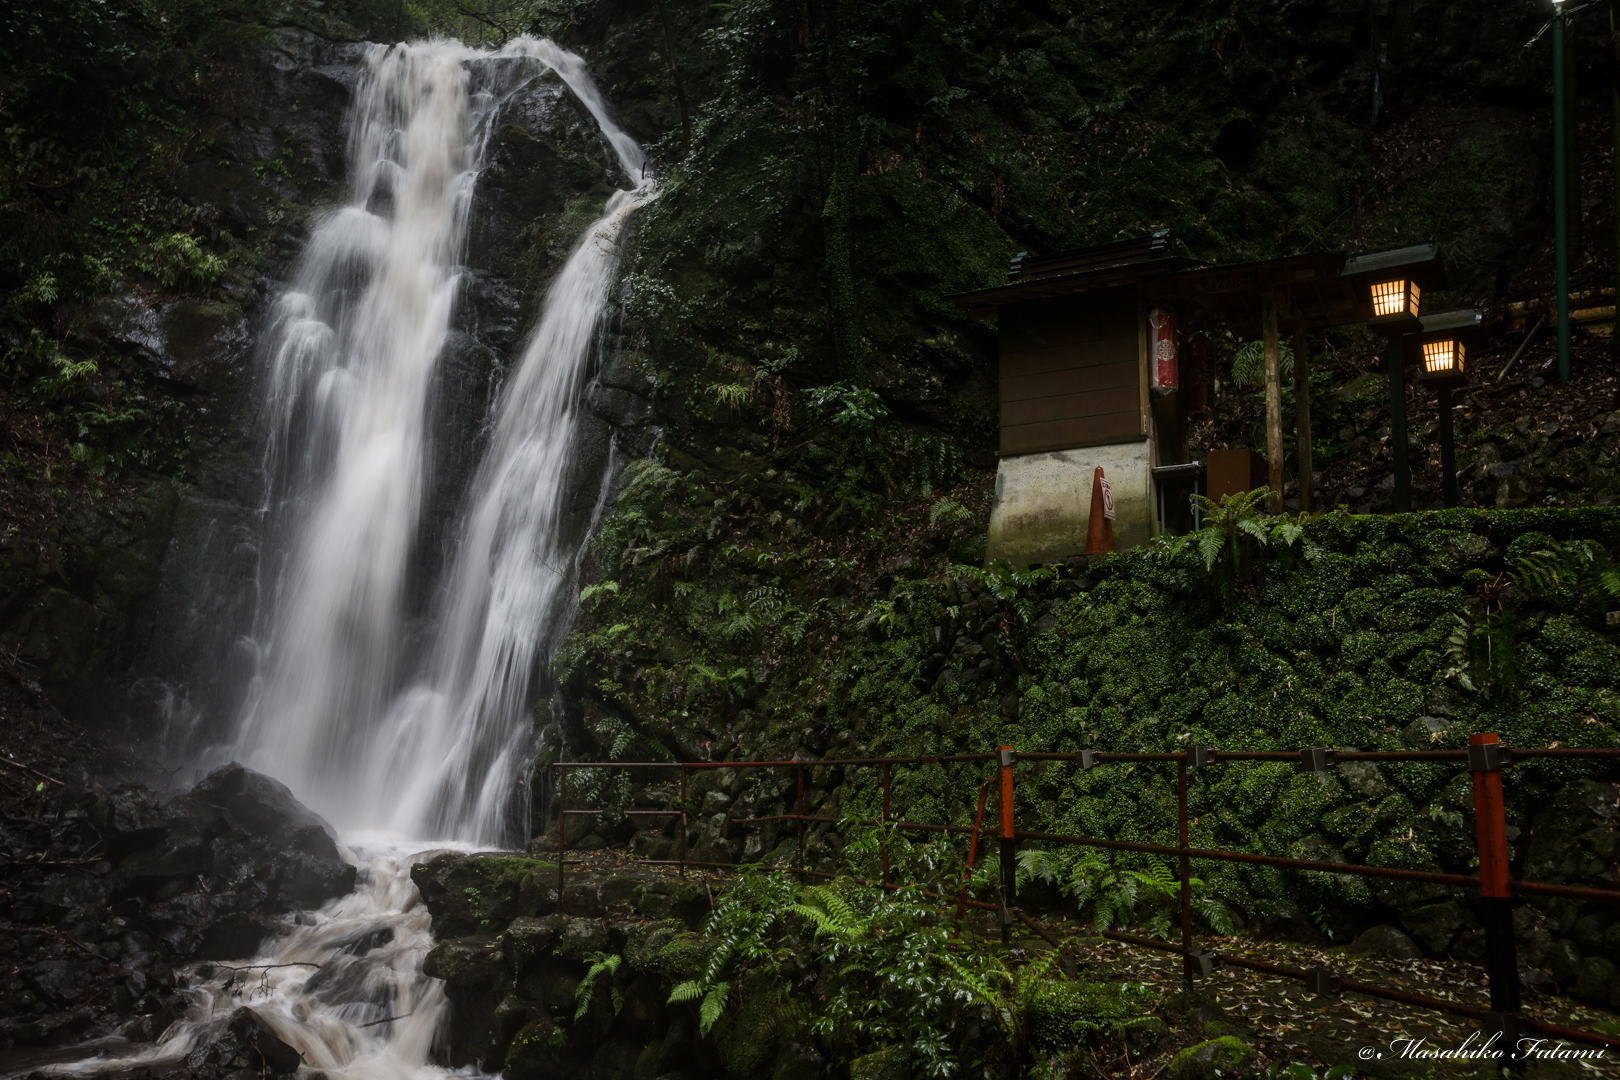 Fudou Waterfall